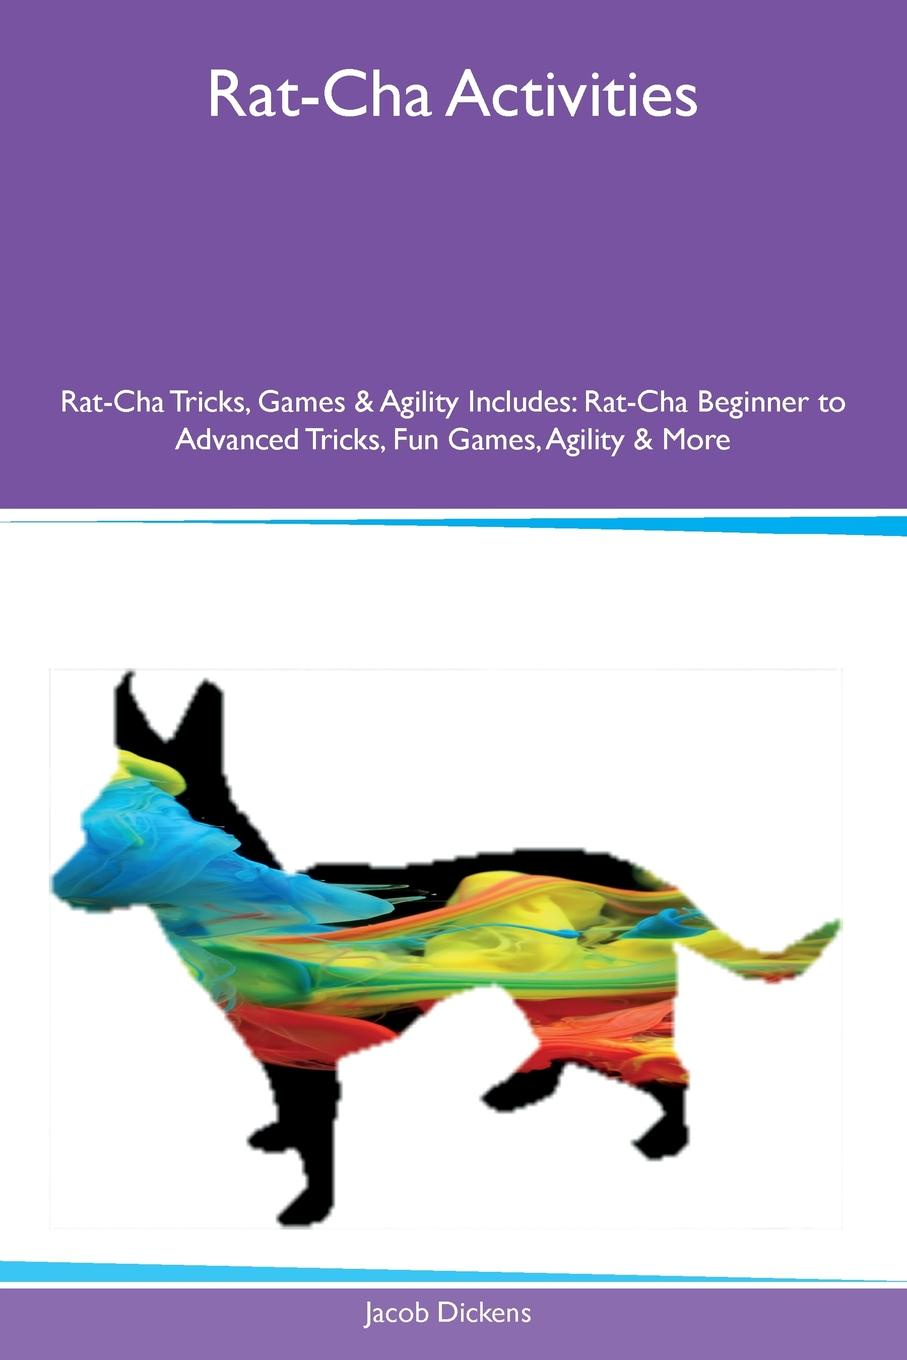 Jacob Dickens Rat-Cha Activities Rat-Cha Tricks, Games & Agility Includes. Rat-Cha Beginner to Advanced Tricks, Fun Games, Agility & More the rat brain in stereotaxic coordinates